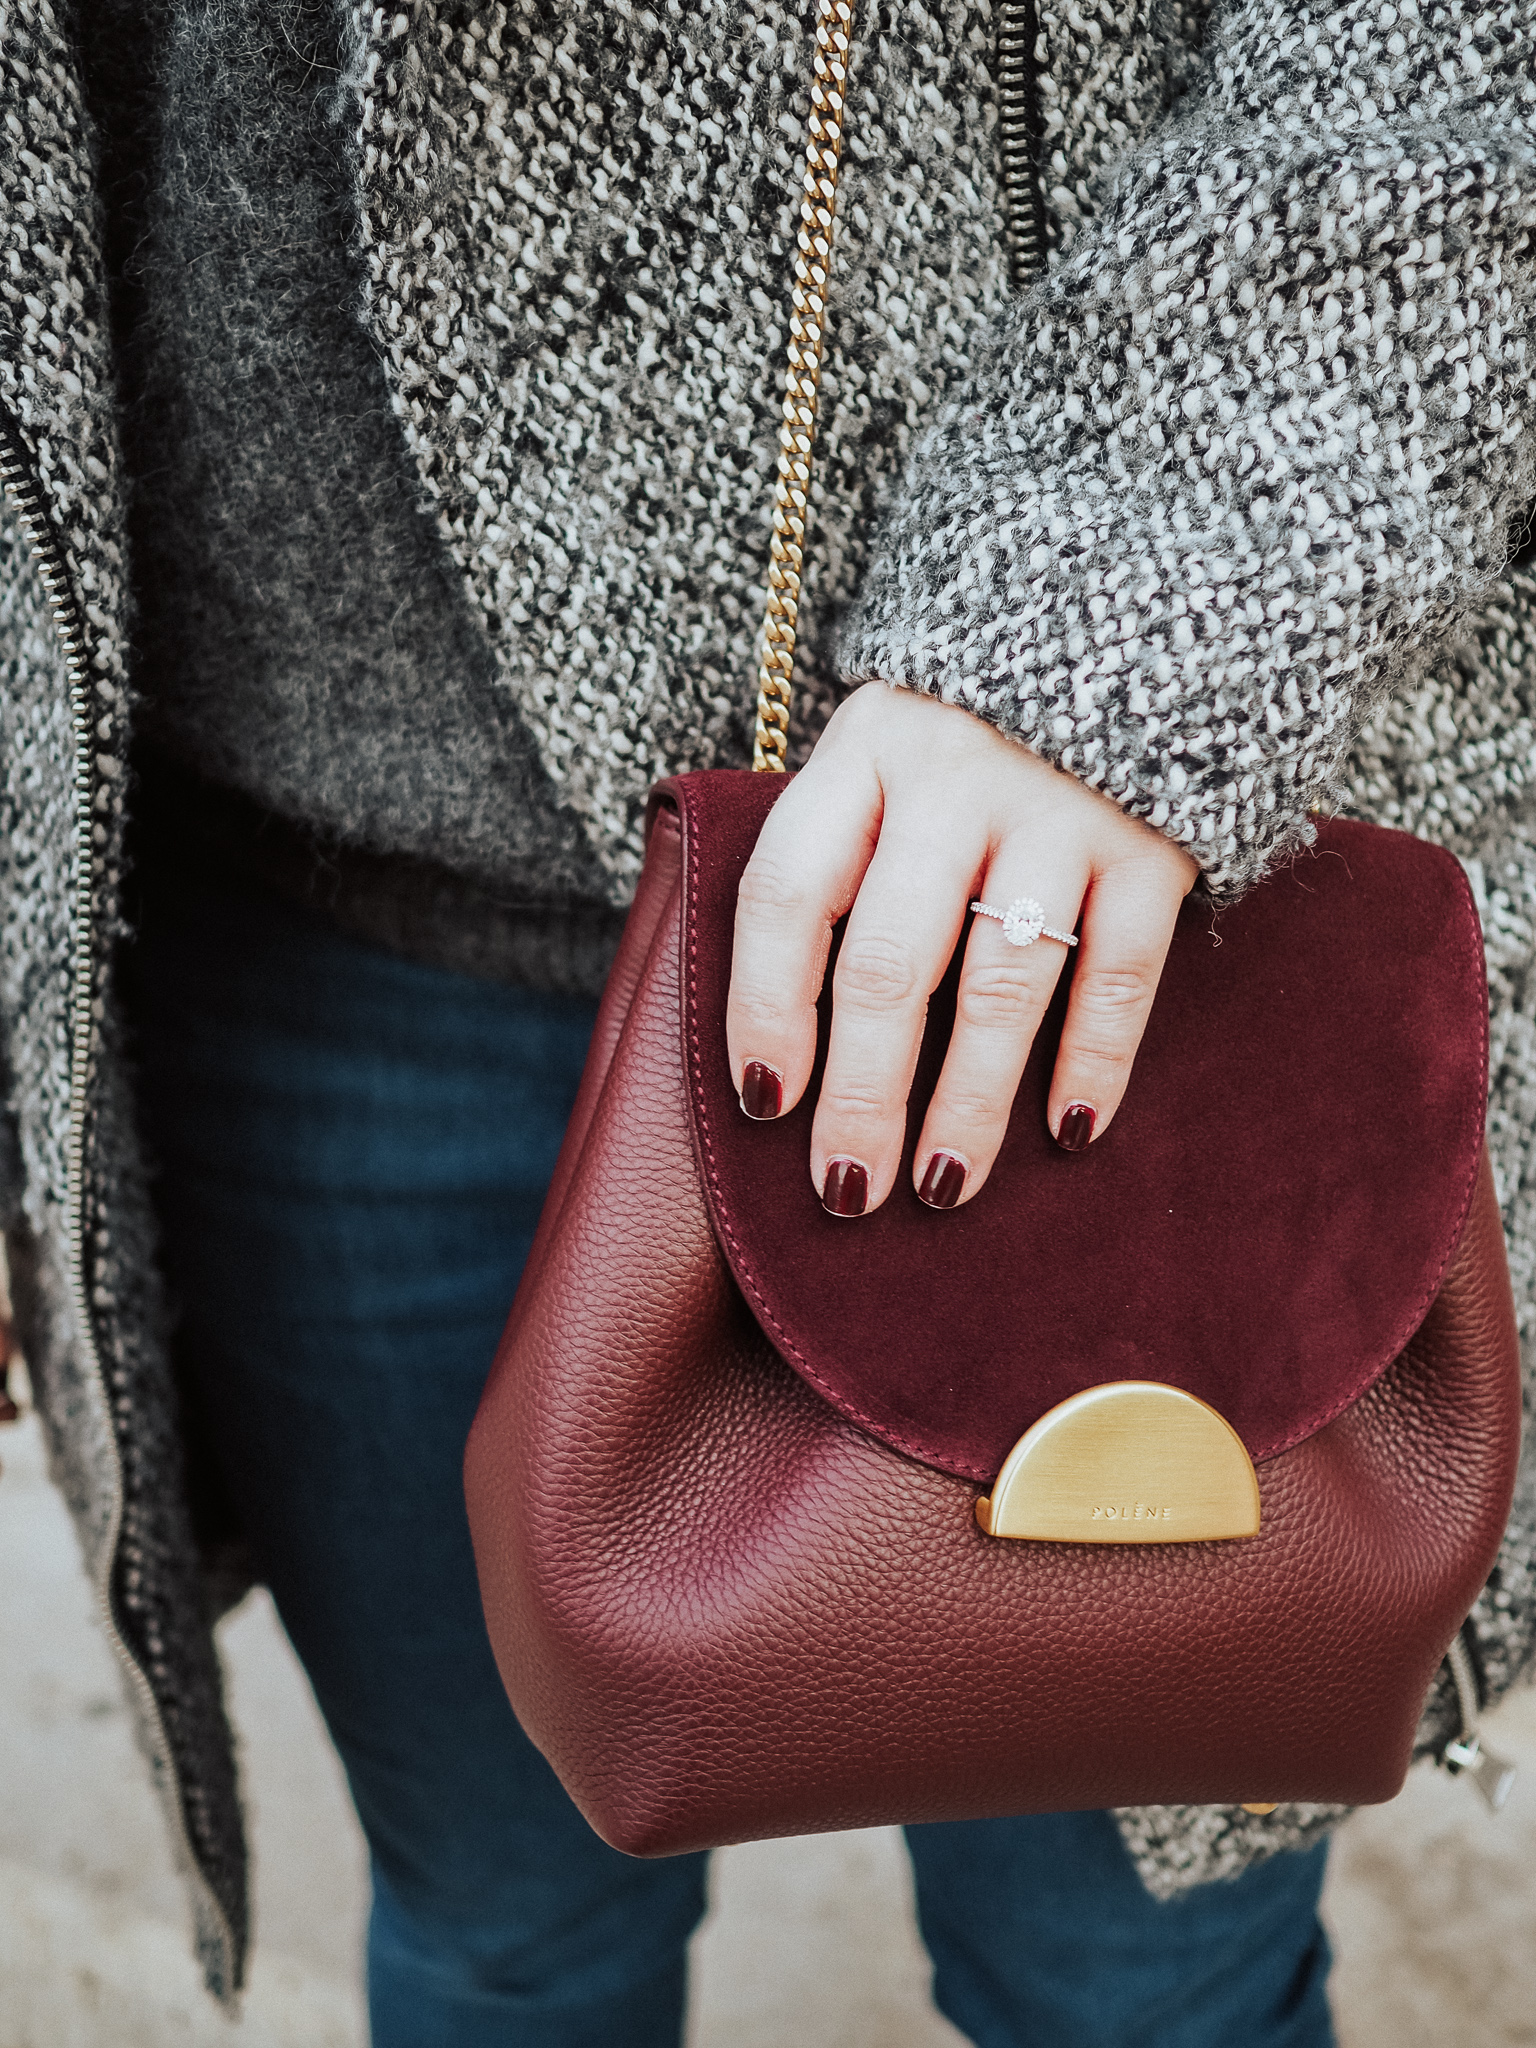 Curious if the Polene Numero Un Mini is worth it? Find out in Kelsey from Blondes and Bagels' Polene Numero Un Mini Review!